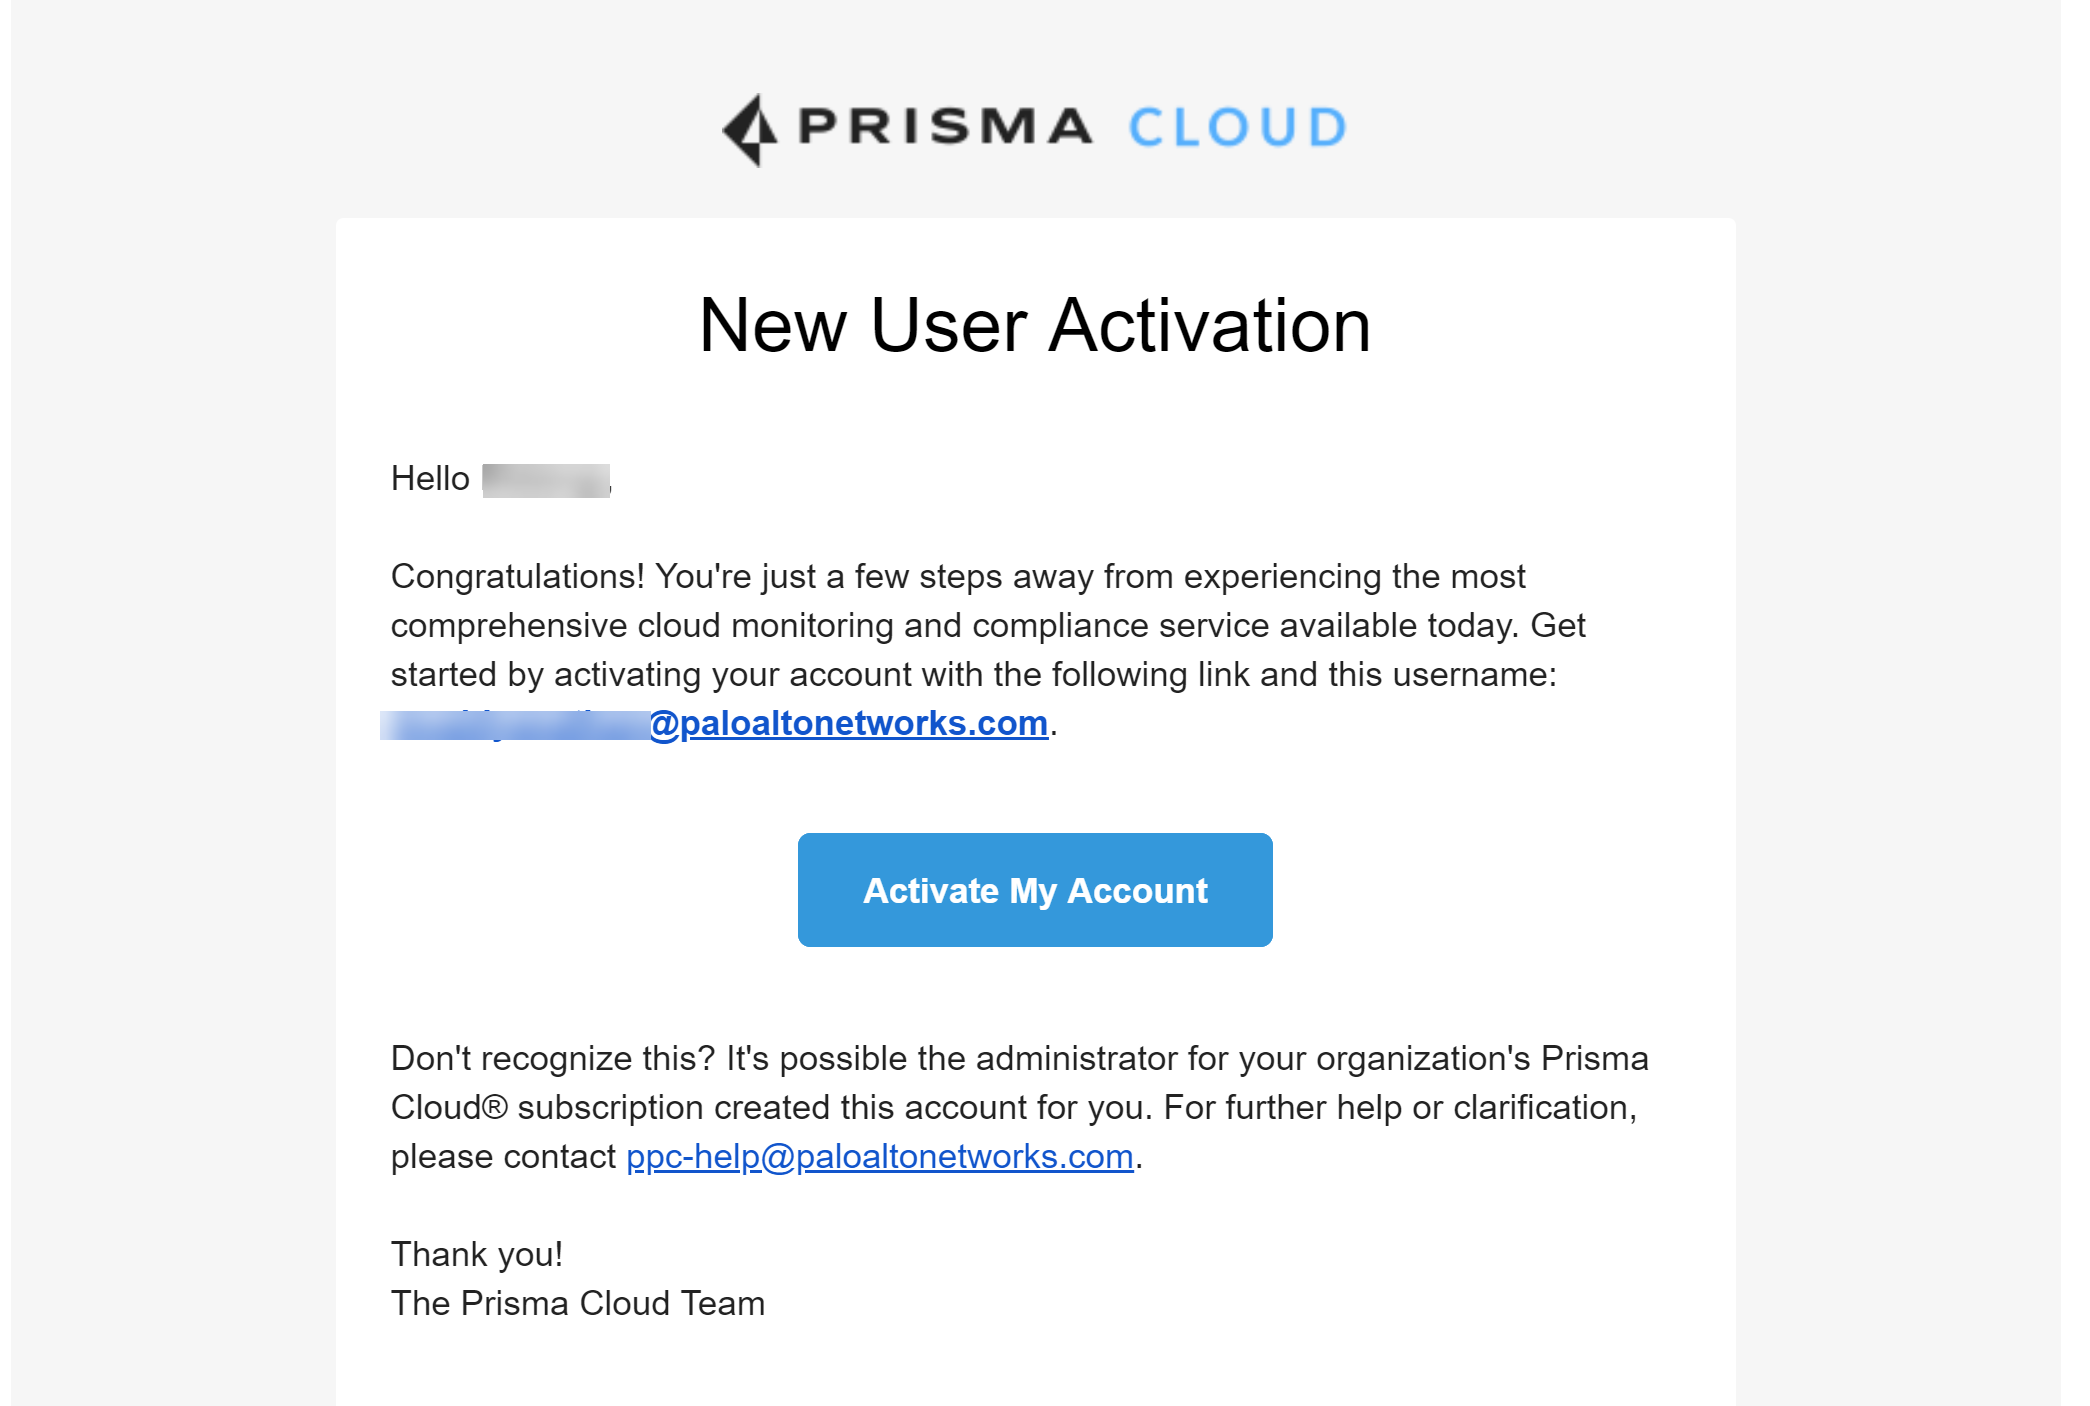 alibaba-cloud-account-welcome-email.png